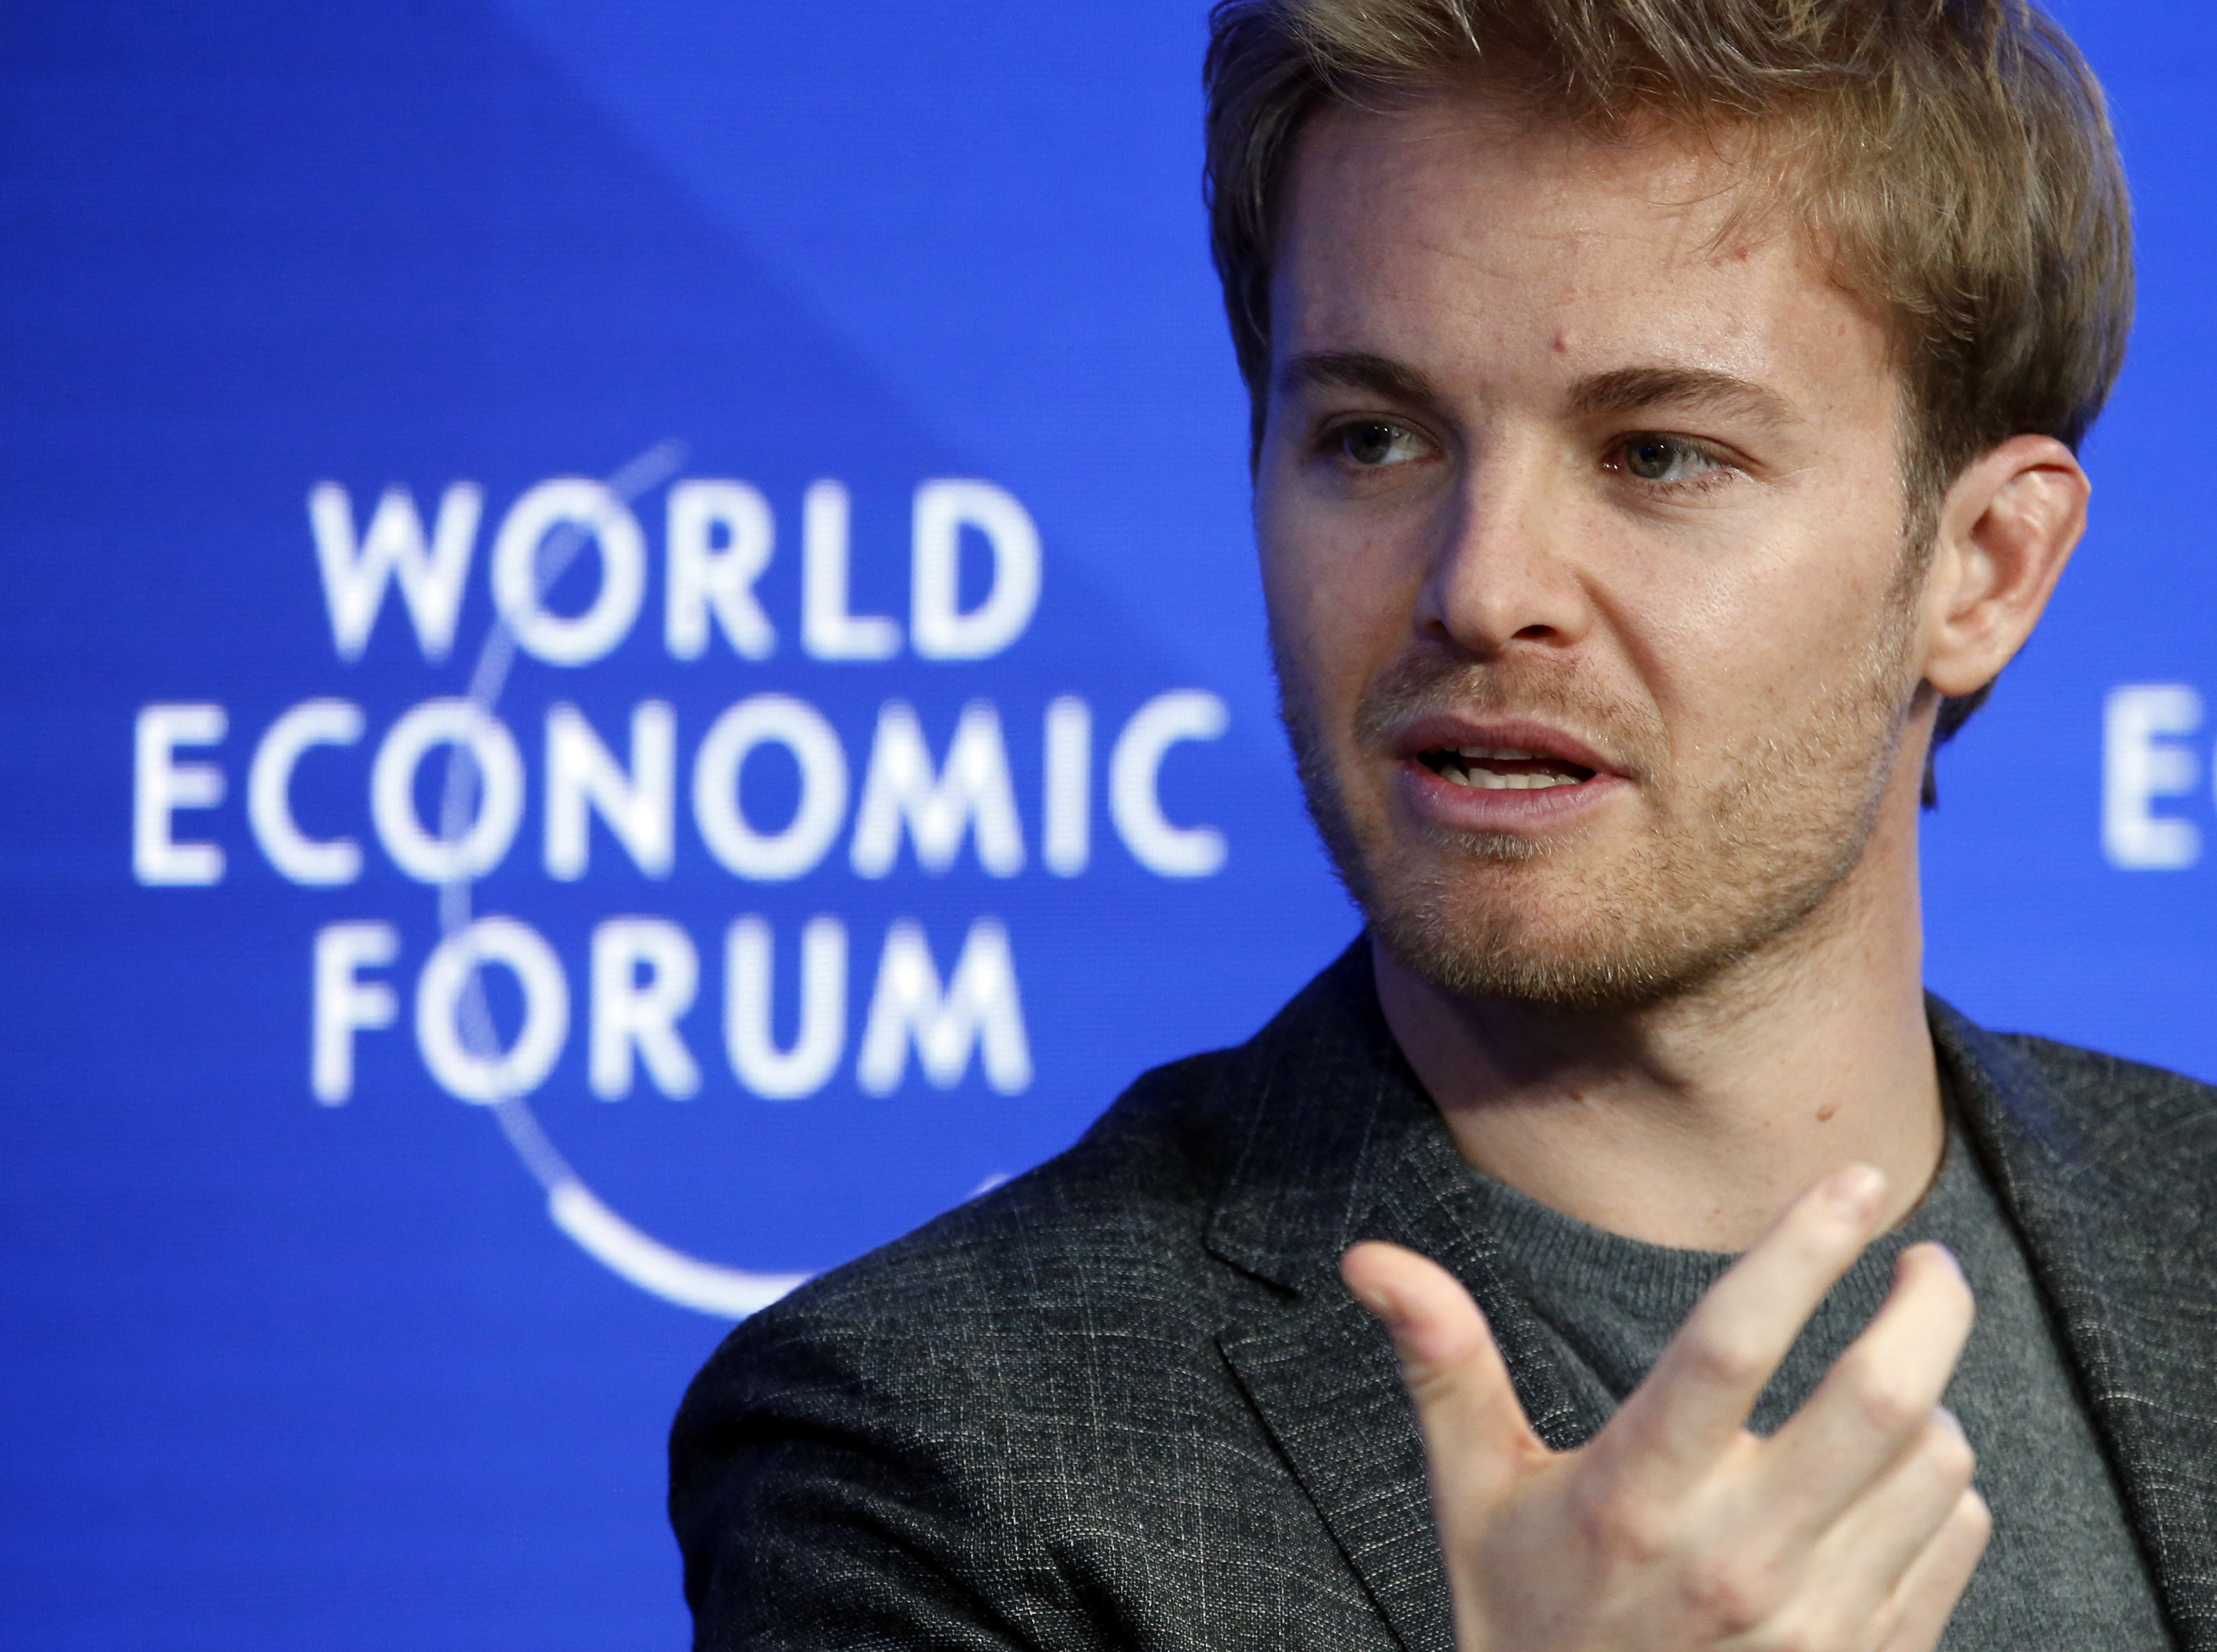 Former Formula One driver Nico Rosberg of Germany attends the World Economic Forum (WEF) annual meeting in Davos, Switzerland January 20, 2017.  REUTERS/Ruben Sprich - LR1ED1K15NJ9S